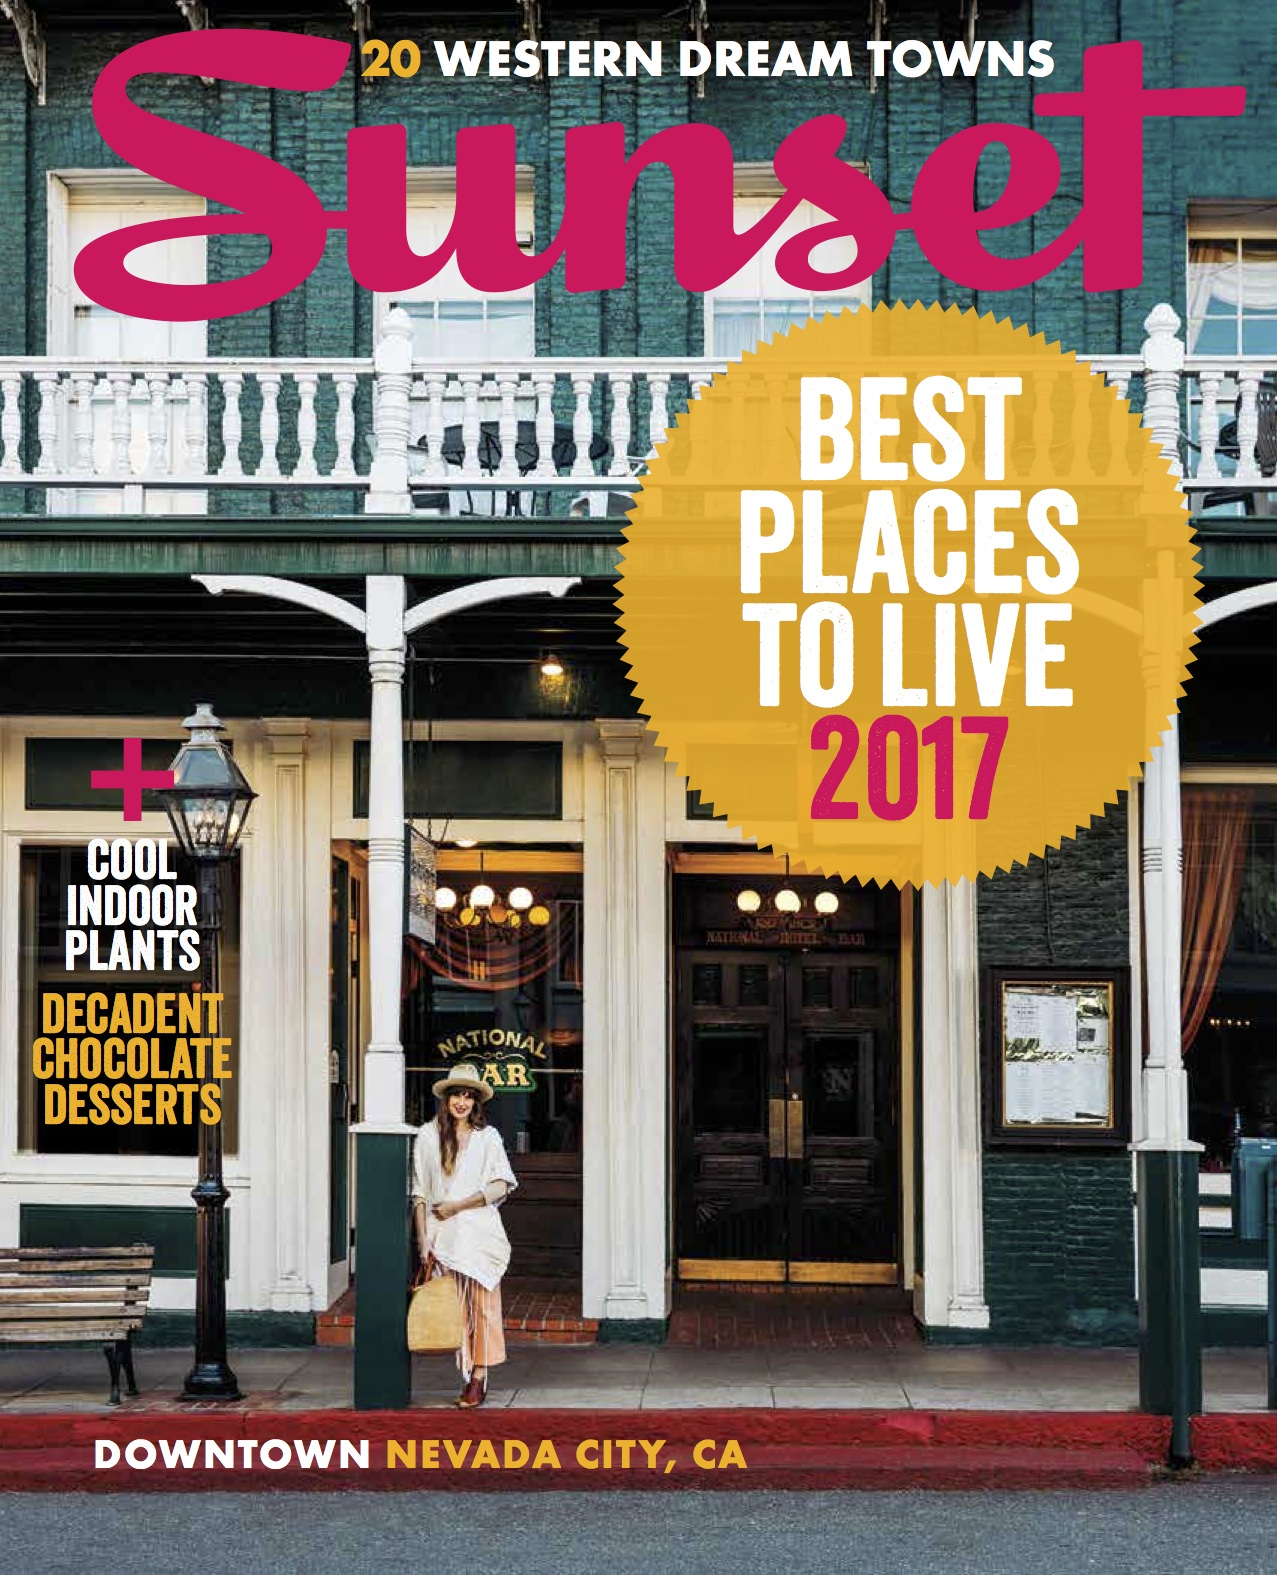 sunset magazine - nevada city best places to live